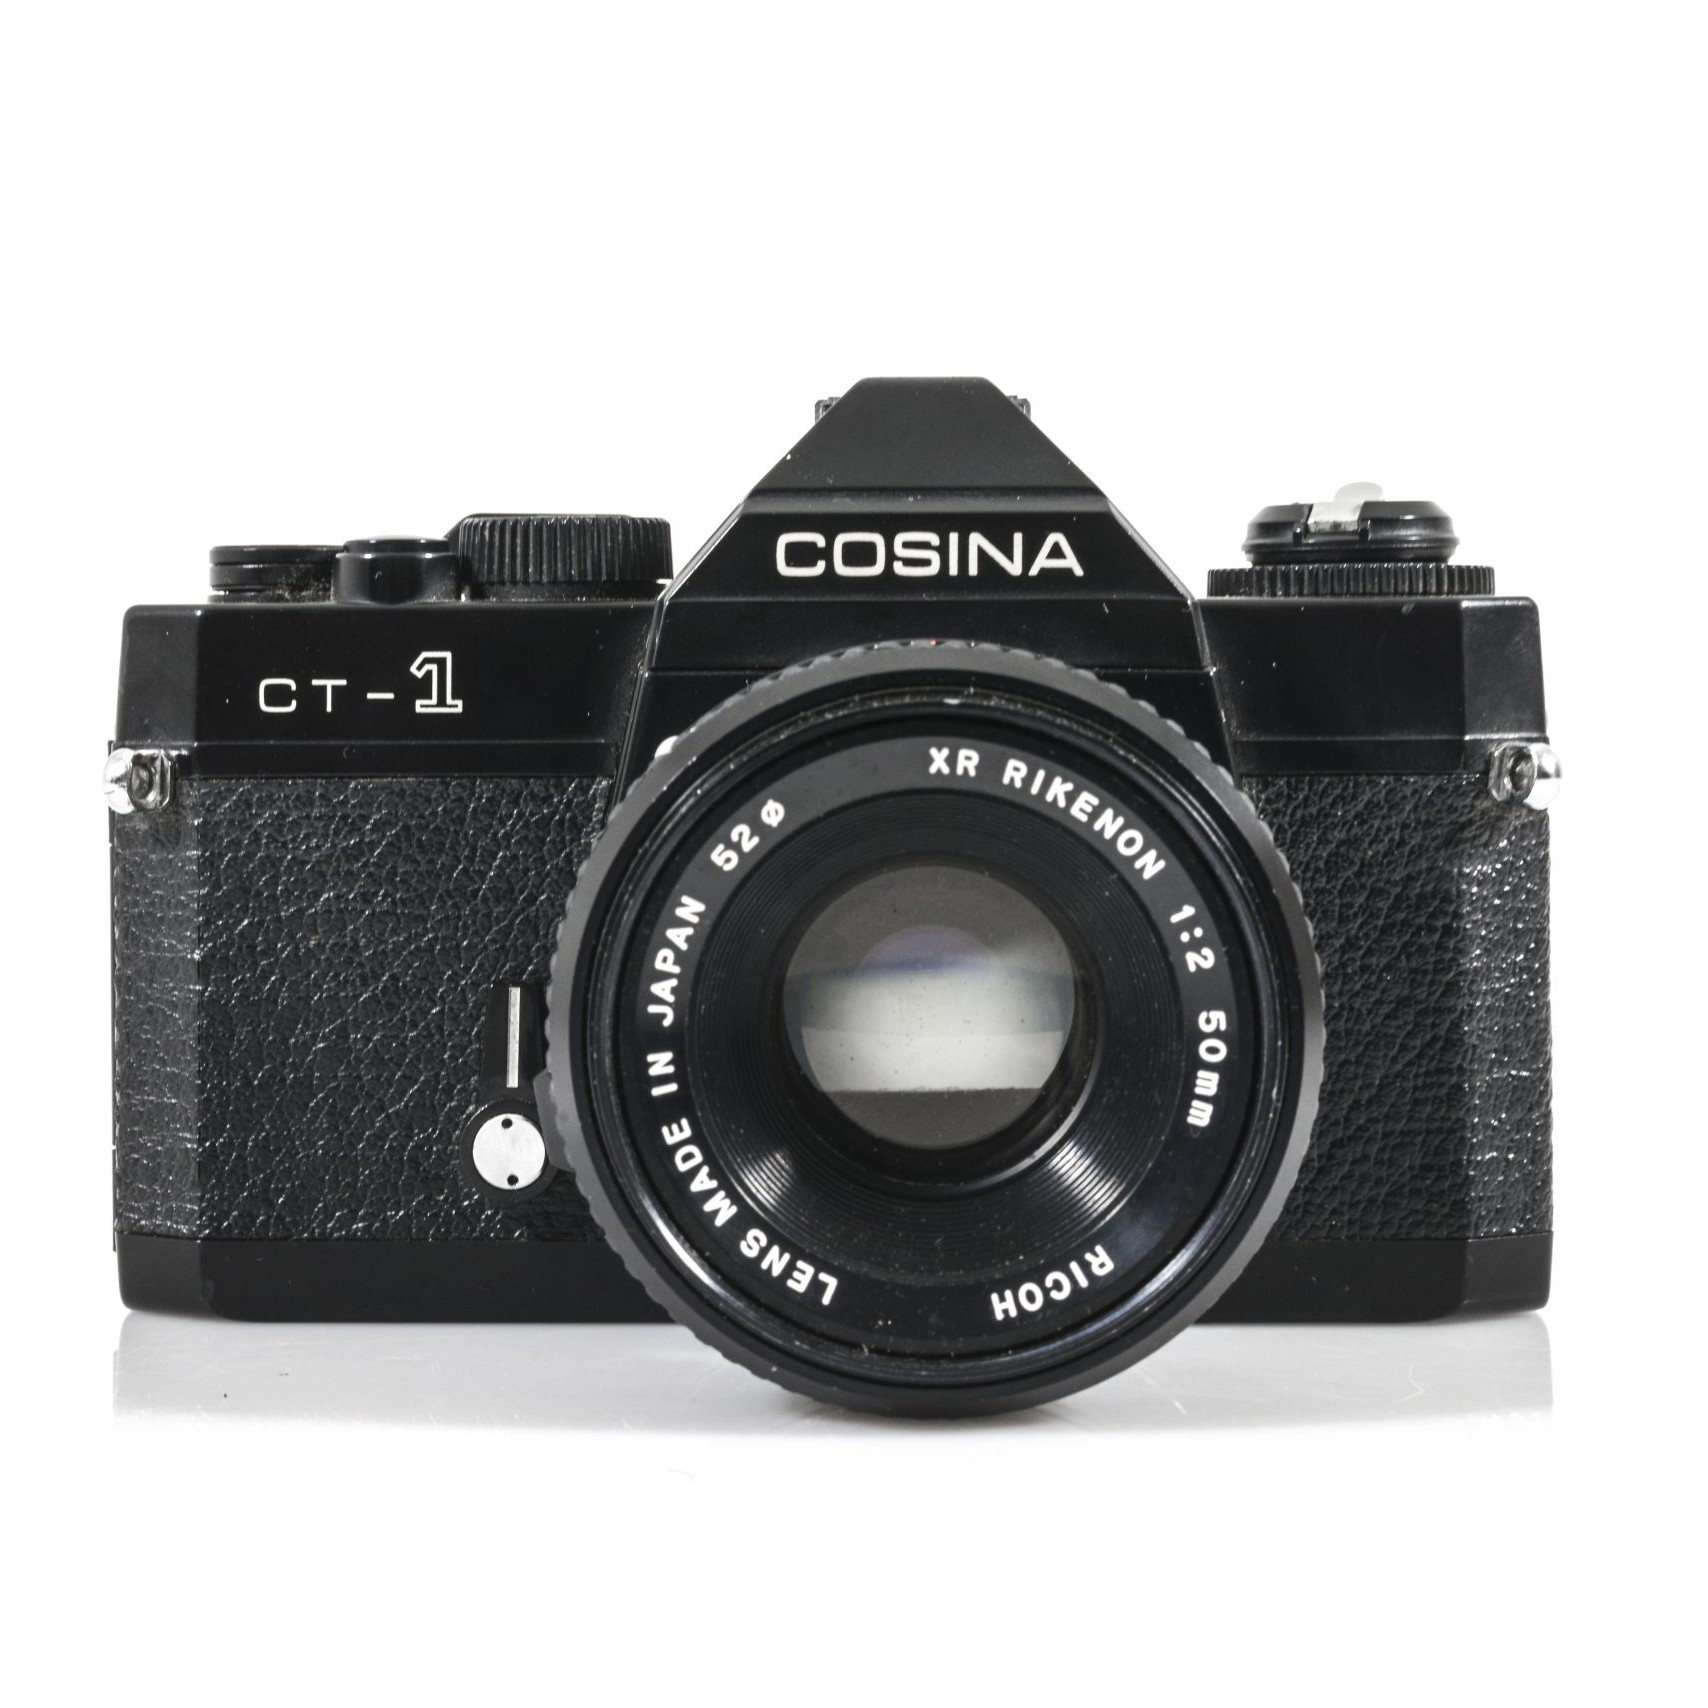 Fantastic Cosina CT-1 35mm Film Camera with an XR Rikenon F2 50mm Lens and a Cosnia 80-200mm F4.5 Lens the south west collective of photography